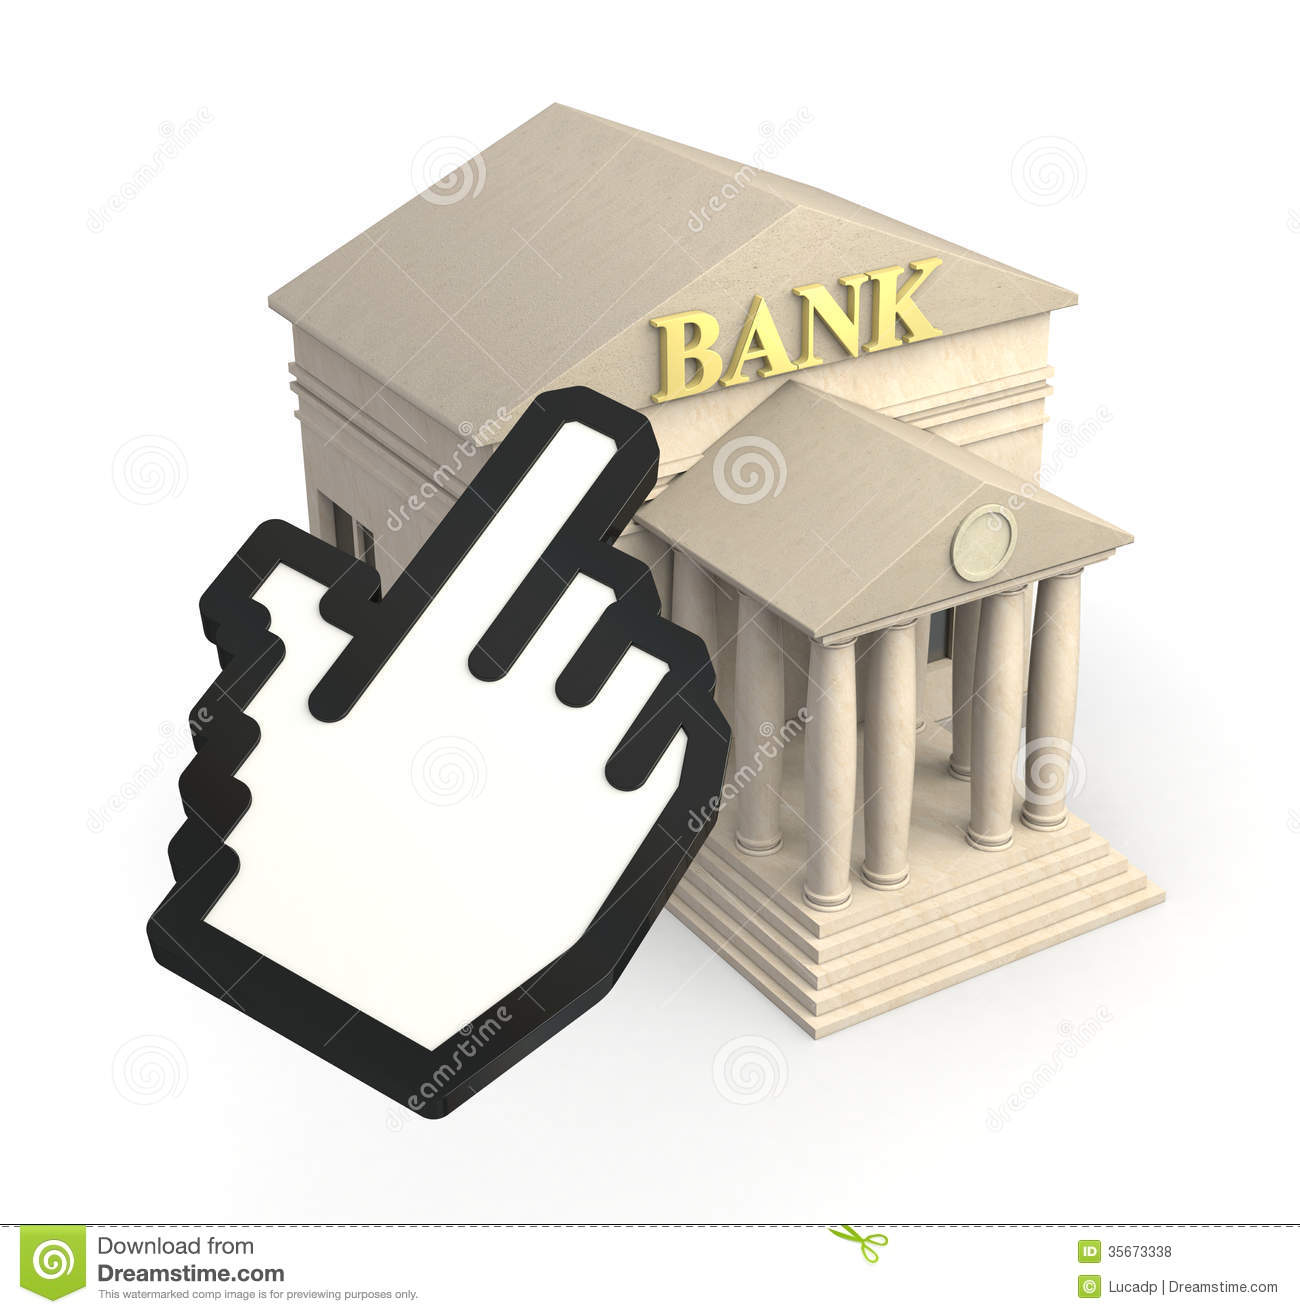 Online banking royalty free stock photos image 35673338 for Rendering online free